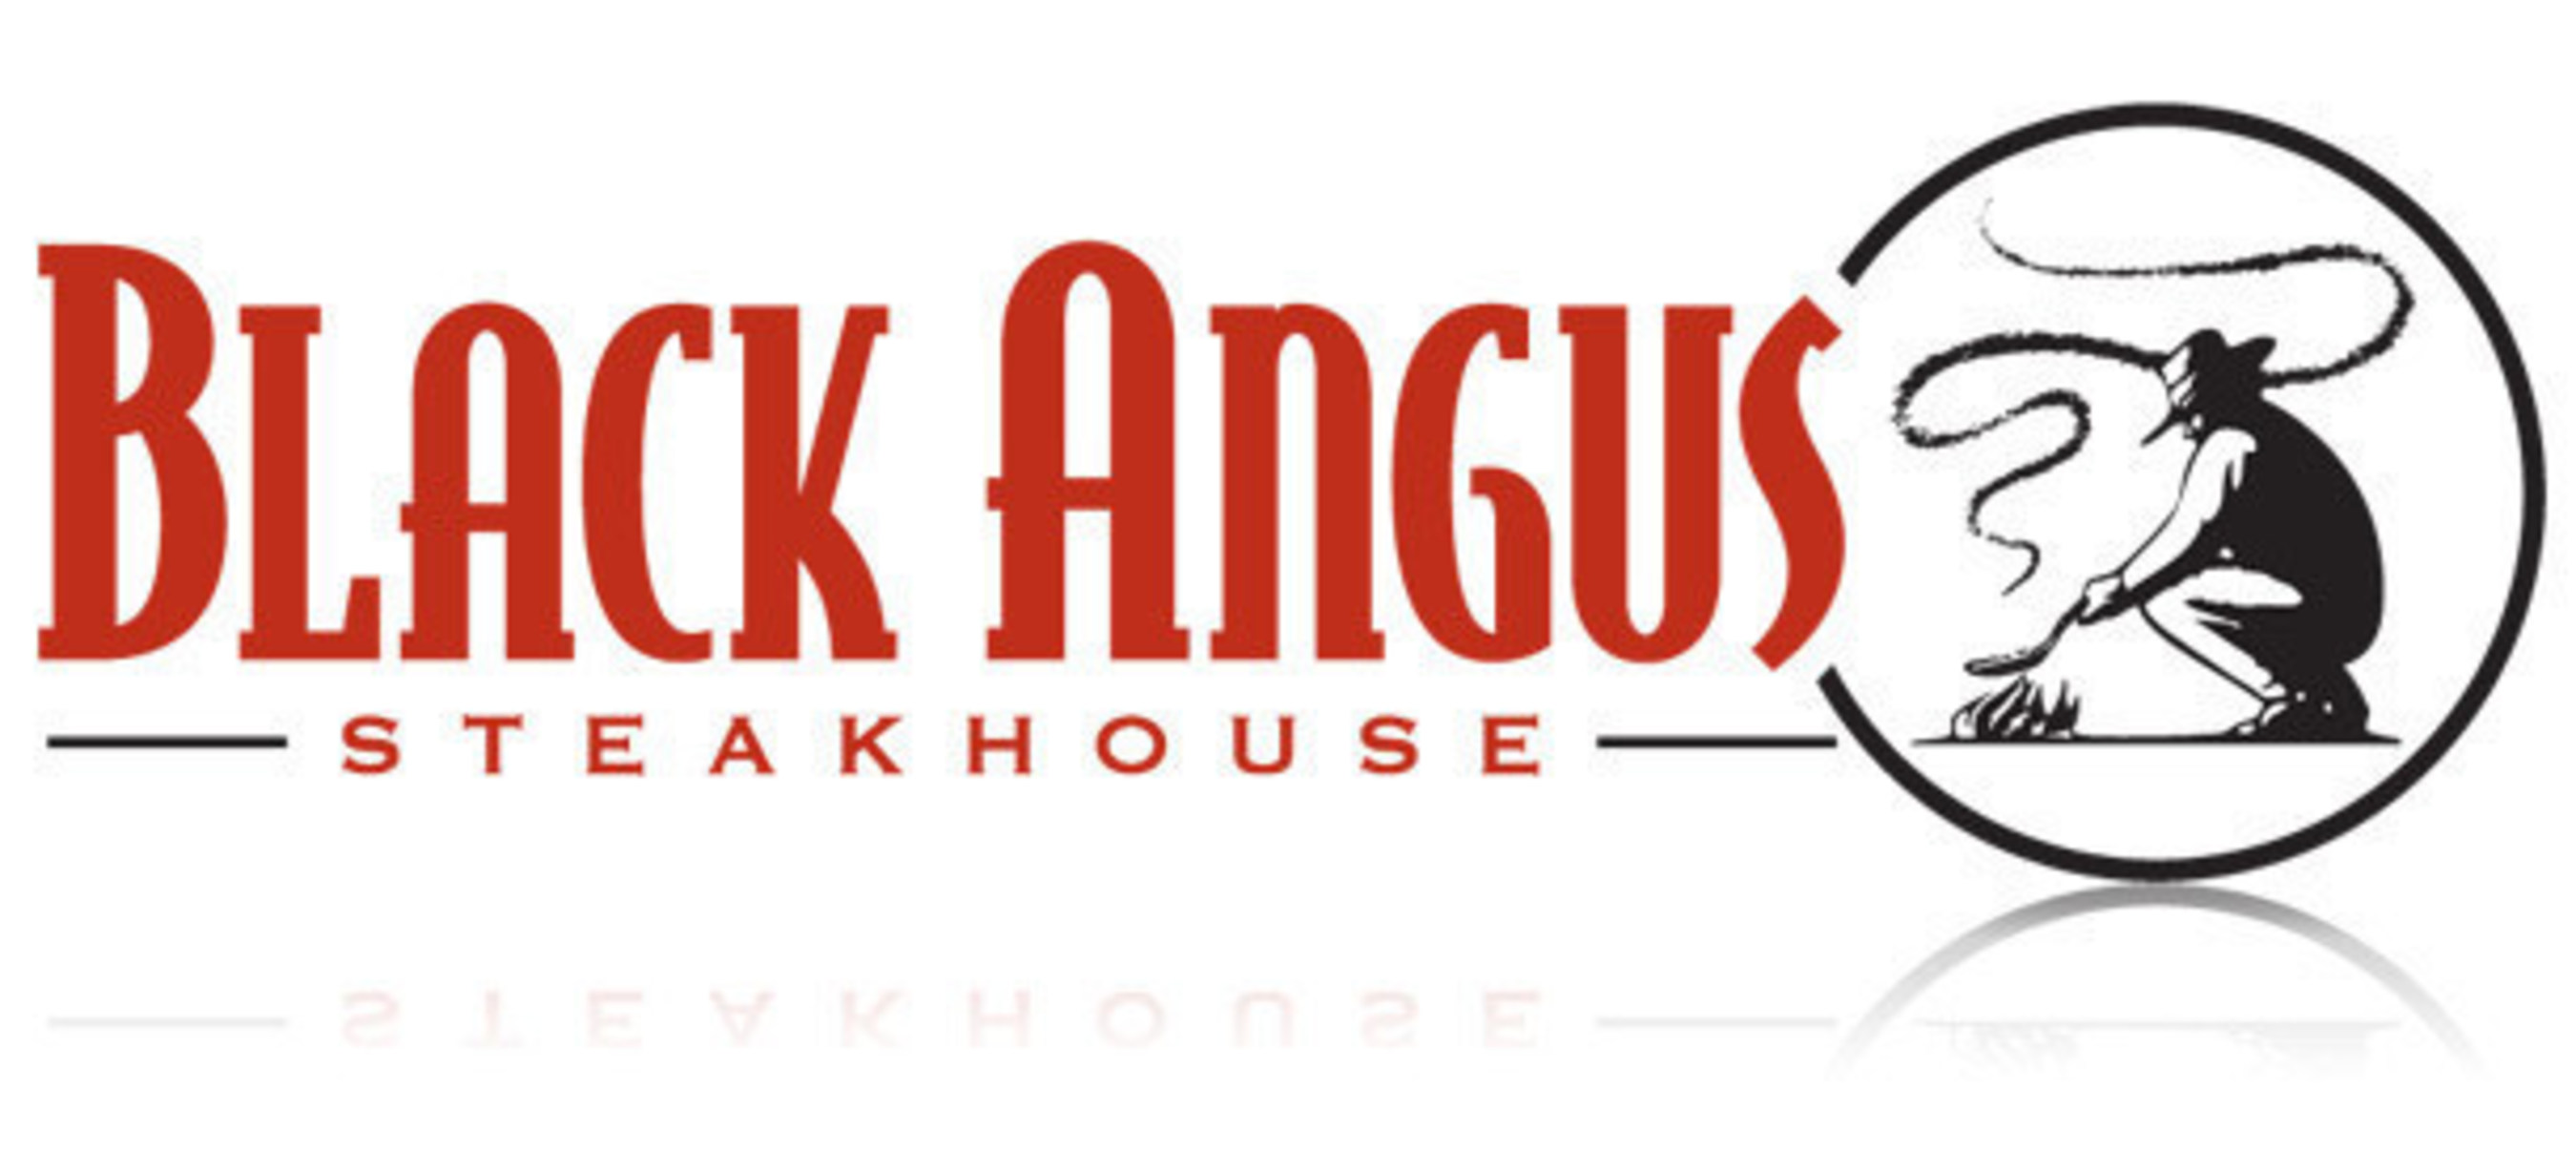 Black Angus Steakhouse 40% off $50 Ecard Gift Card Image